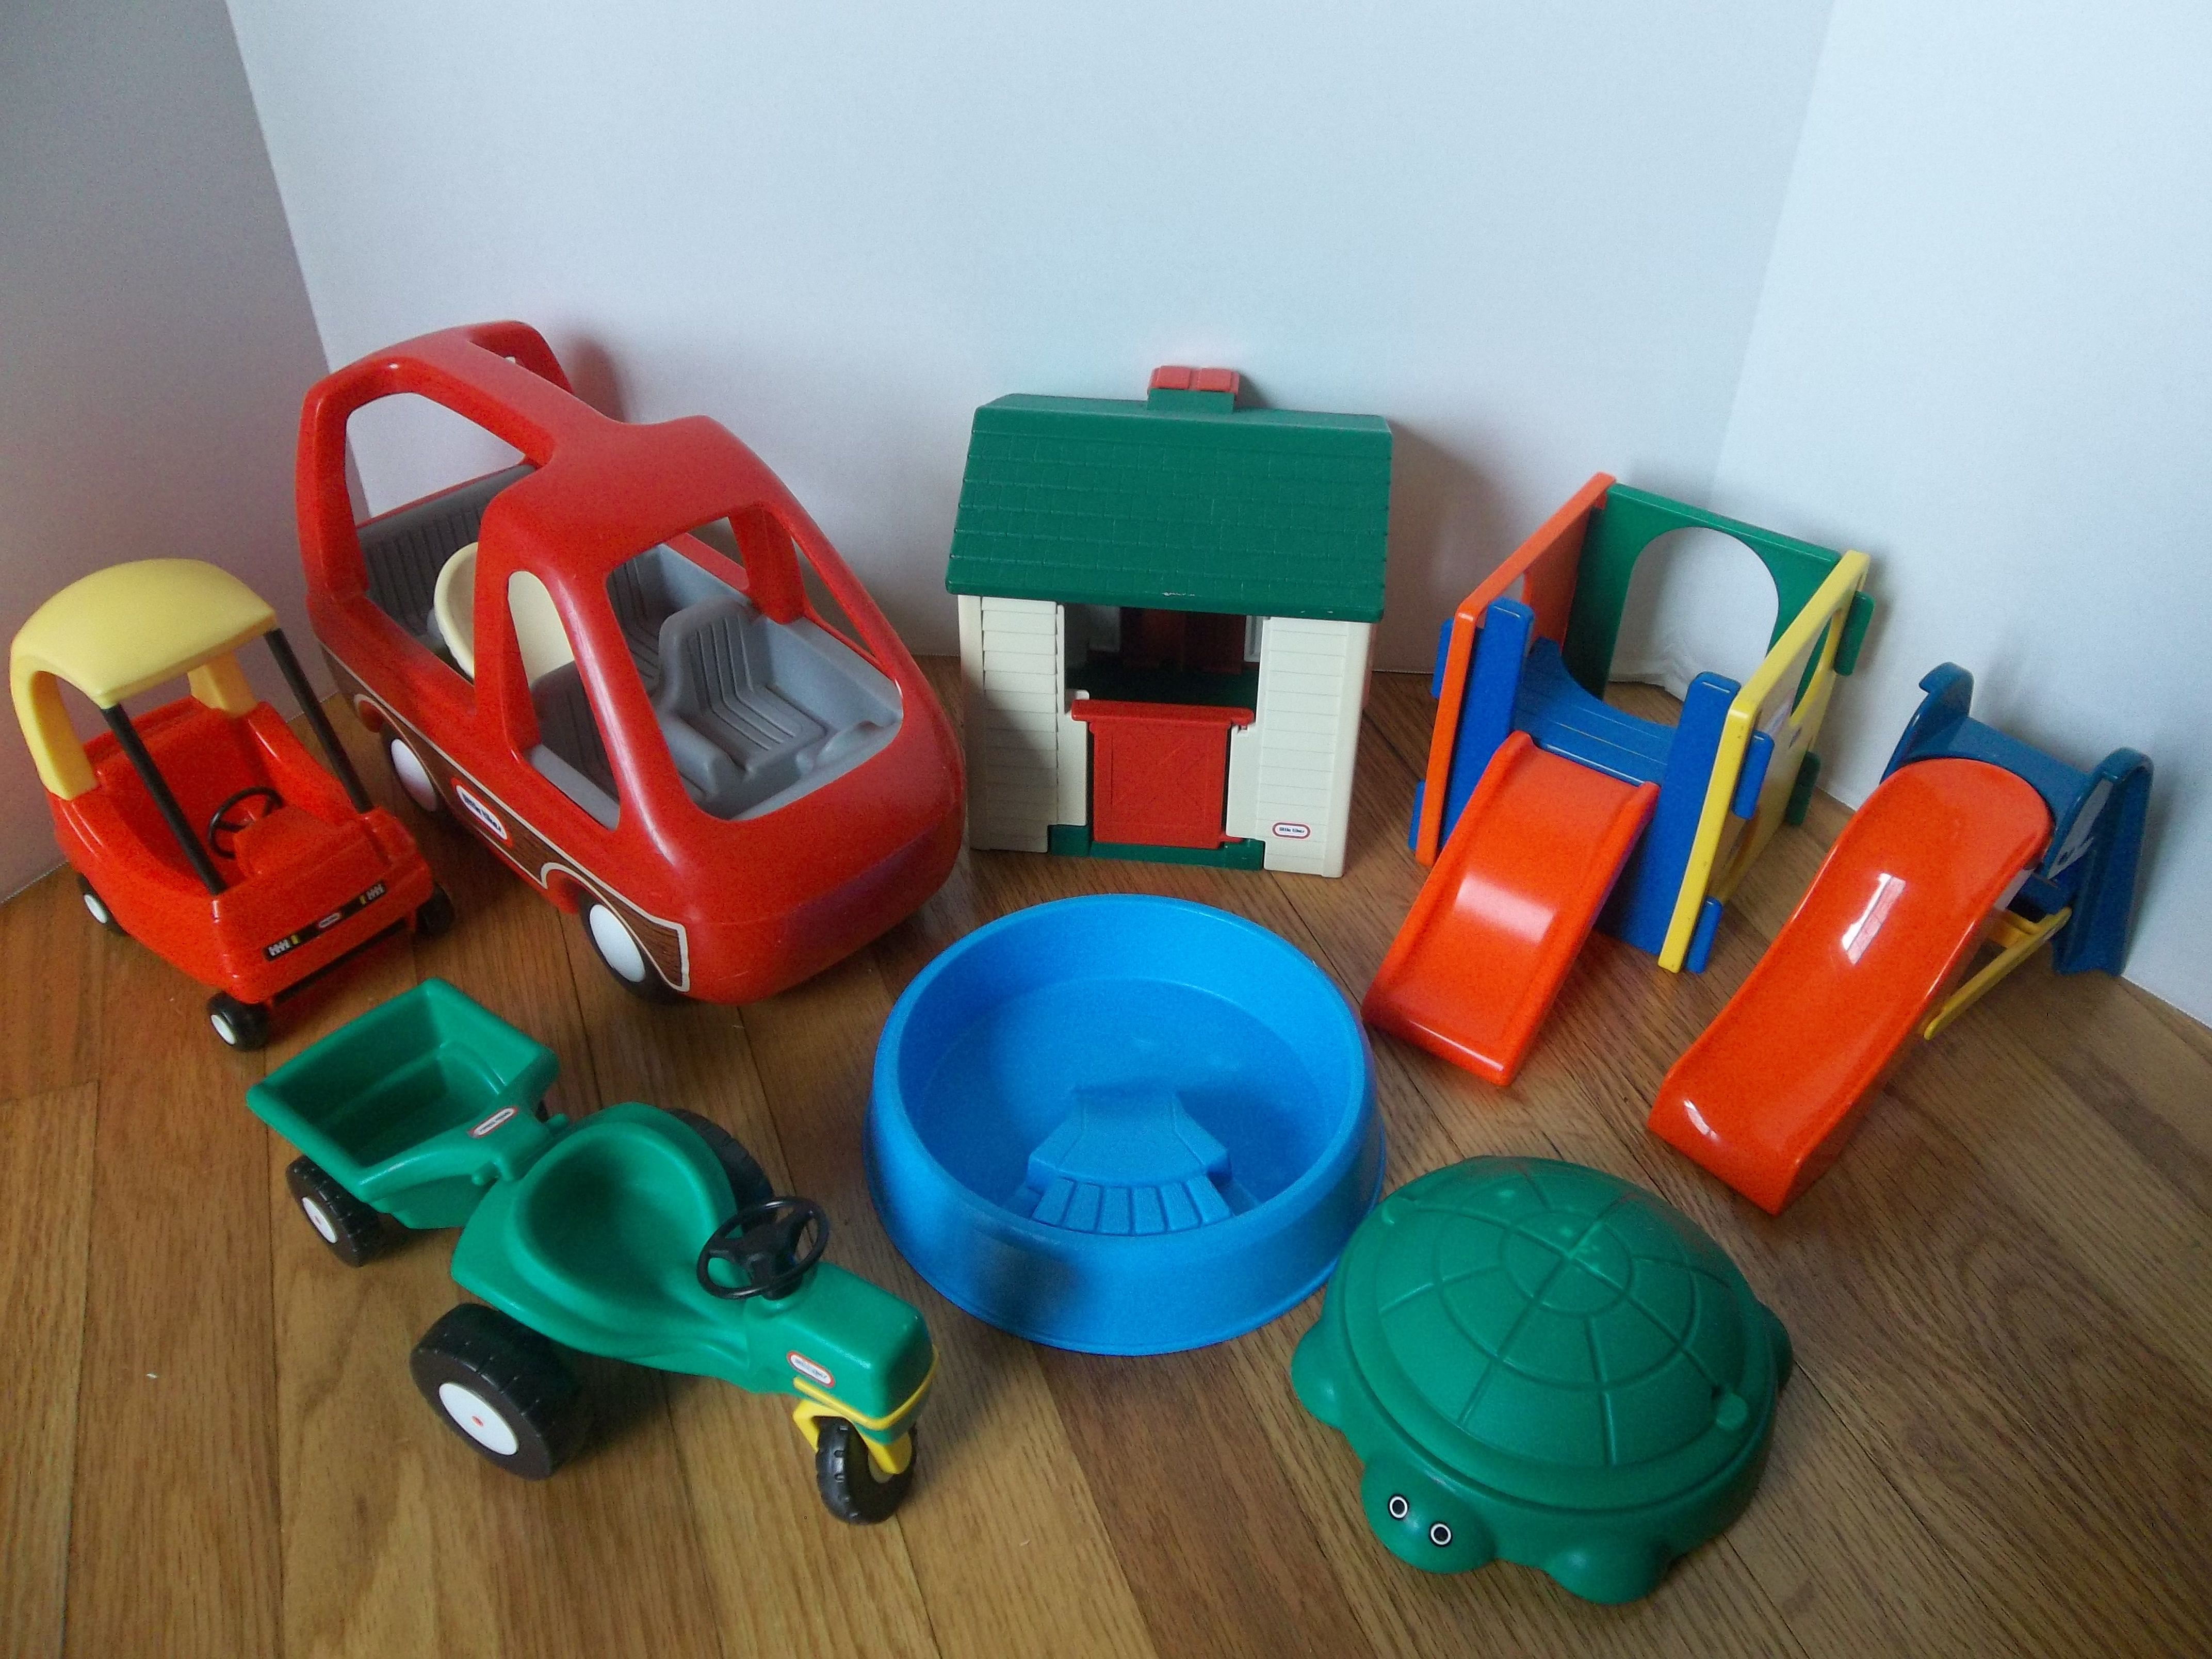 Little Tikes Doll House Items I m selling on eBay